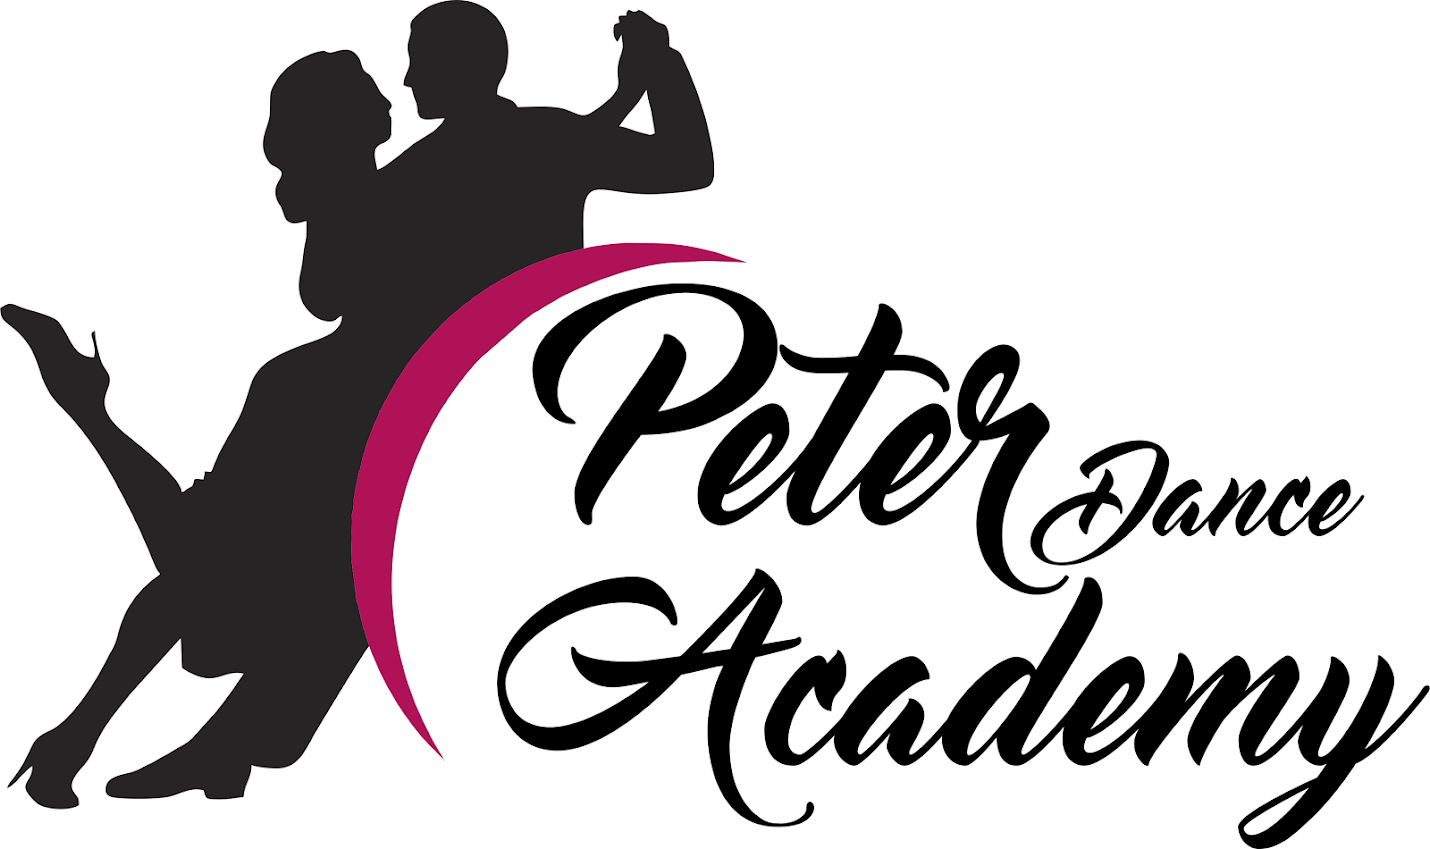 Peter Dance Academy